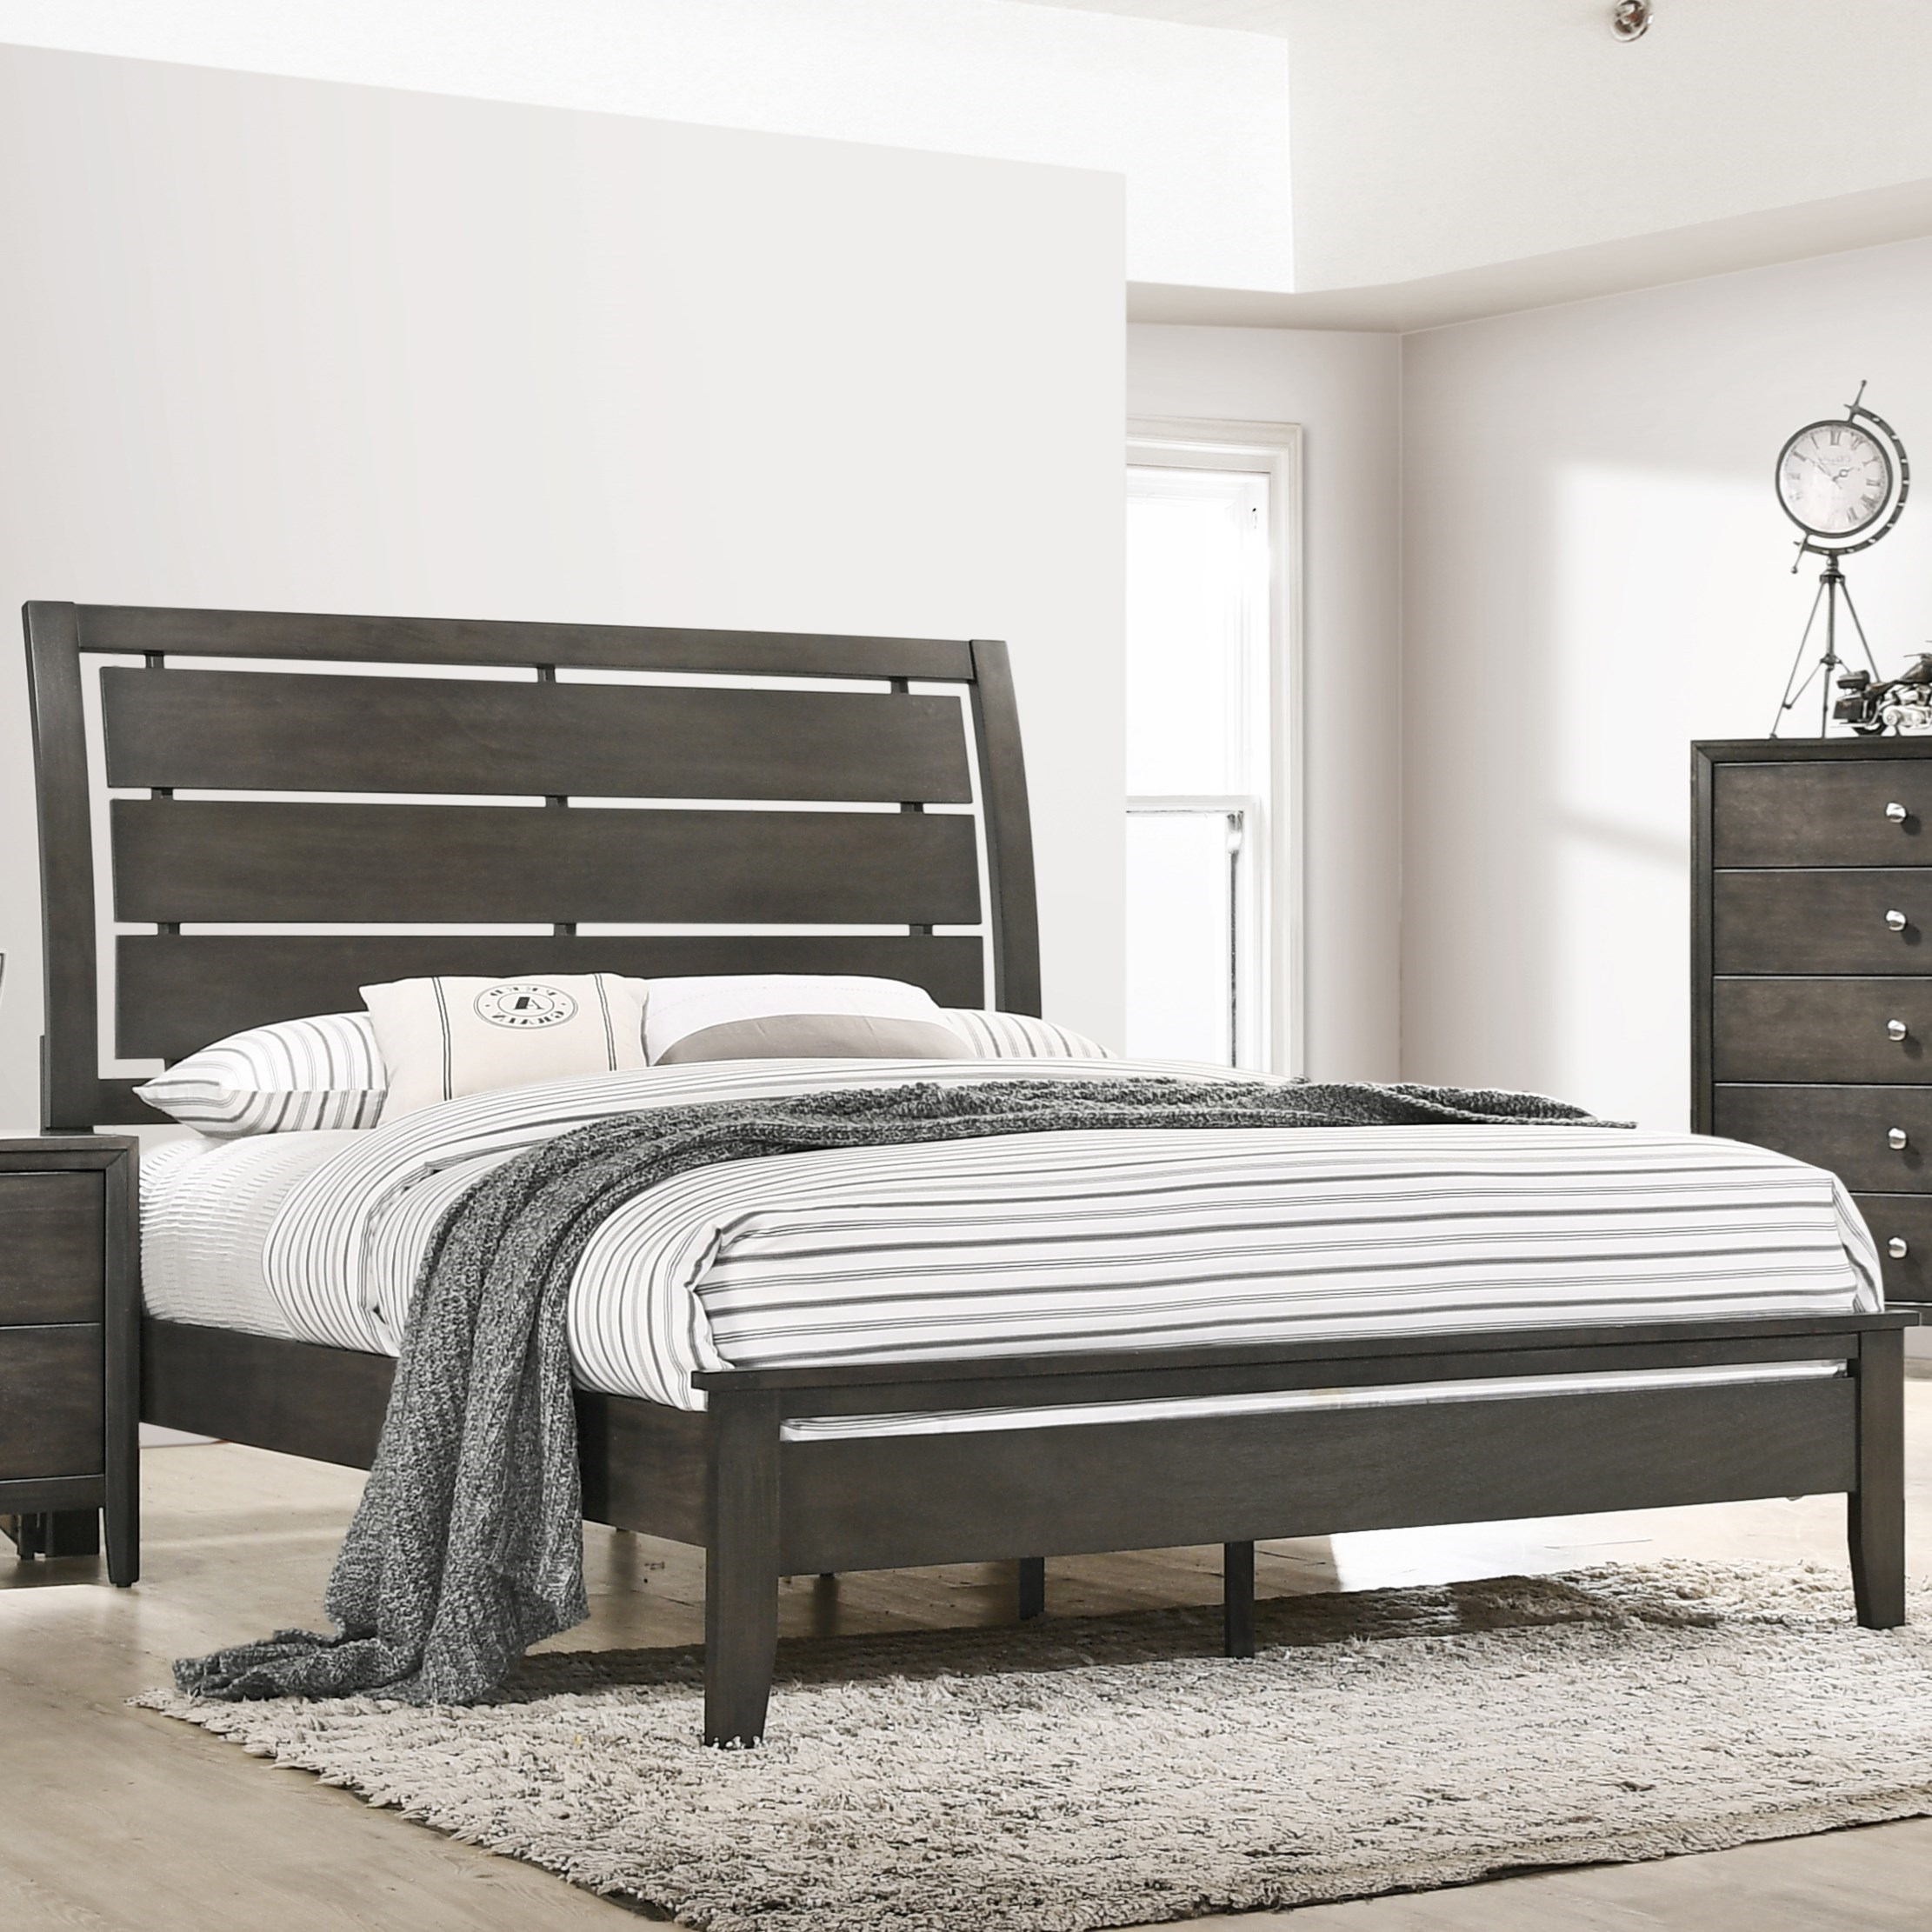 Grant Twin Bed by United Furniture Industries at Dream Home Interiors